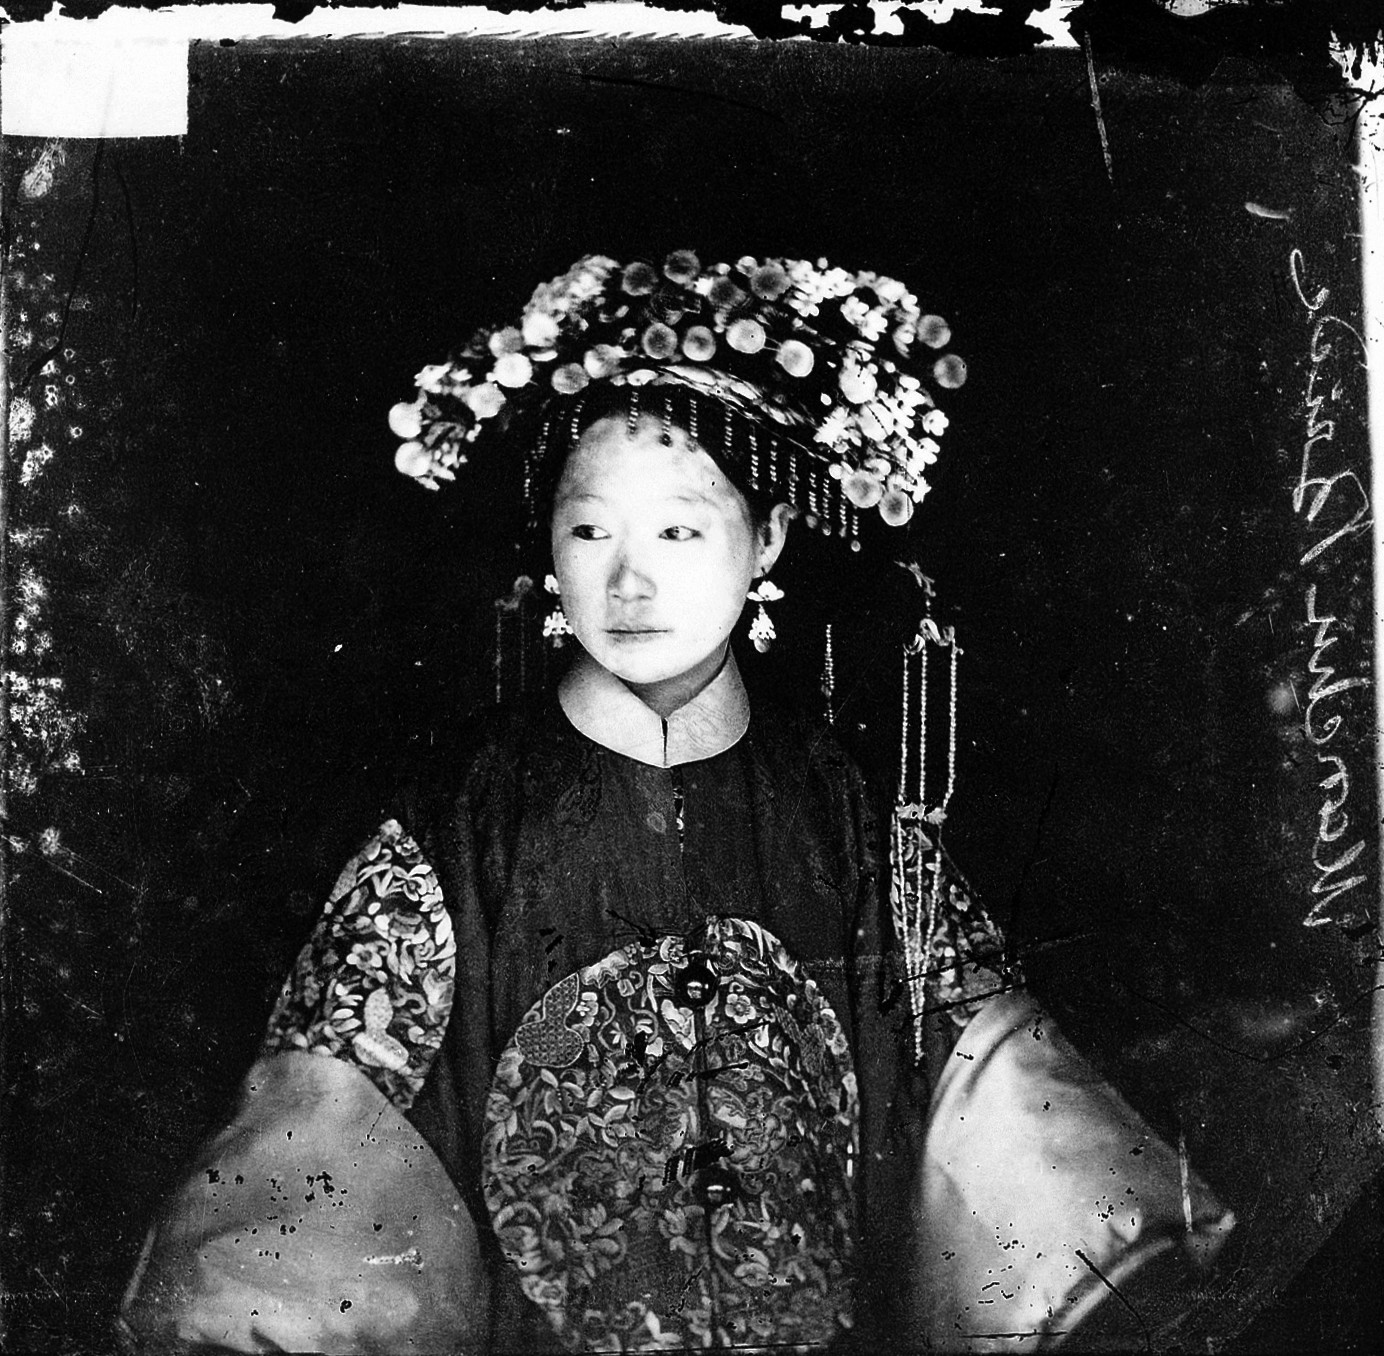 L0018855 Manchu bride, Peking, Penchilie province, China Credit: Wellcome Library, London. Wellcome Images images@wellcome.ac.uk http://wellcomeimages.org Manchu bride in her wedding clothes, Peking, Penchilie province, China Photograph 1871 By: J. ThomsonPublished: [1871] Copyrighted work available under Creative Commons Attribution only licence CC BY 4.0 http://creativecommons.org/licenses/by/4.0/